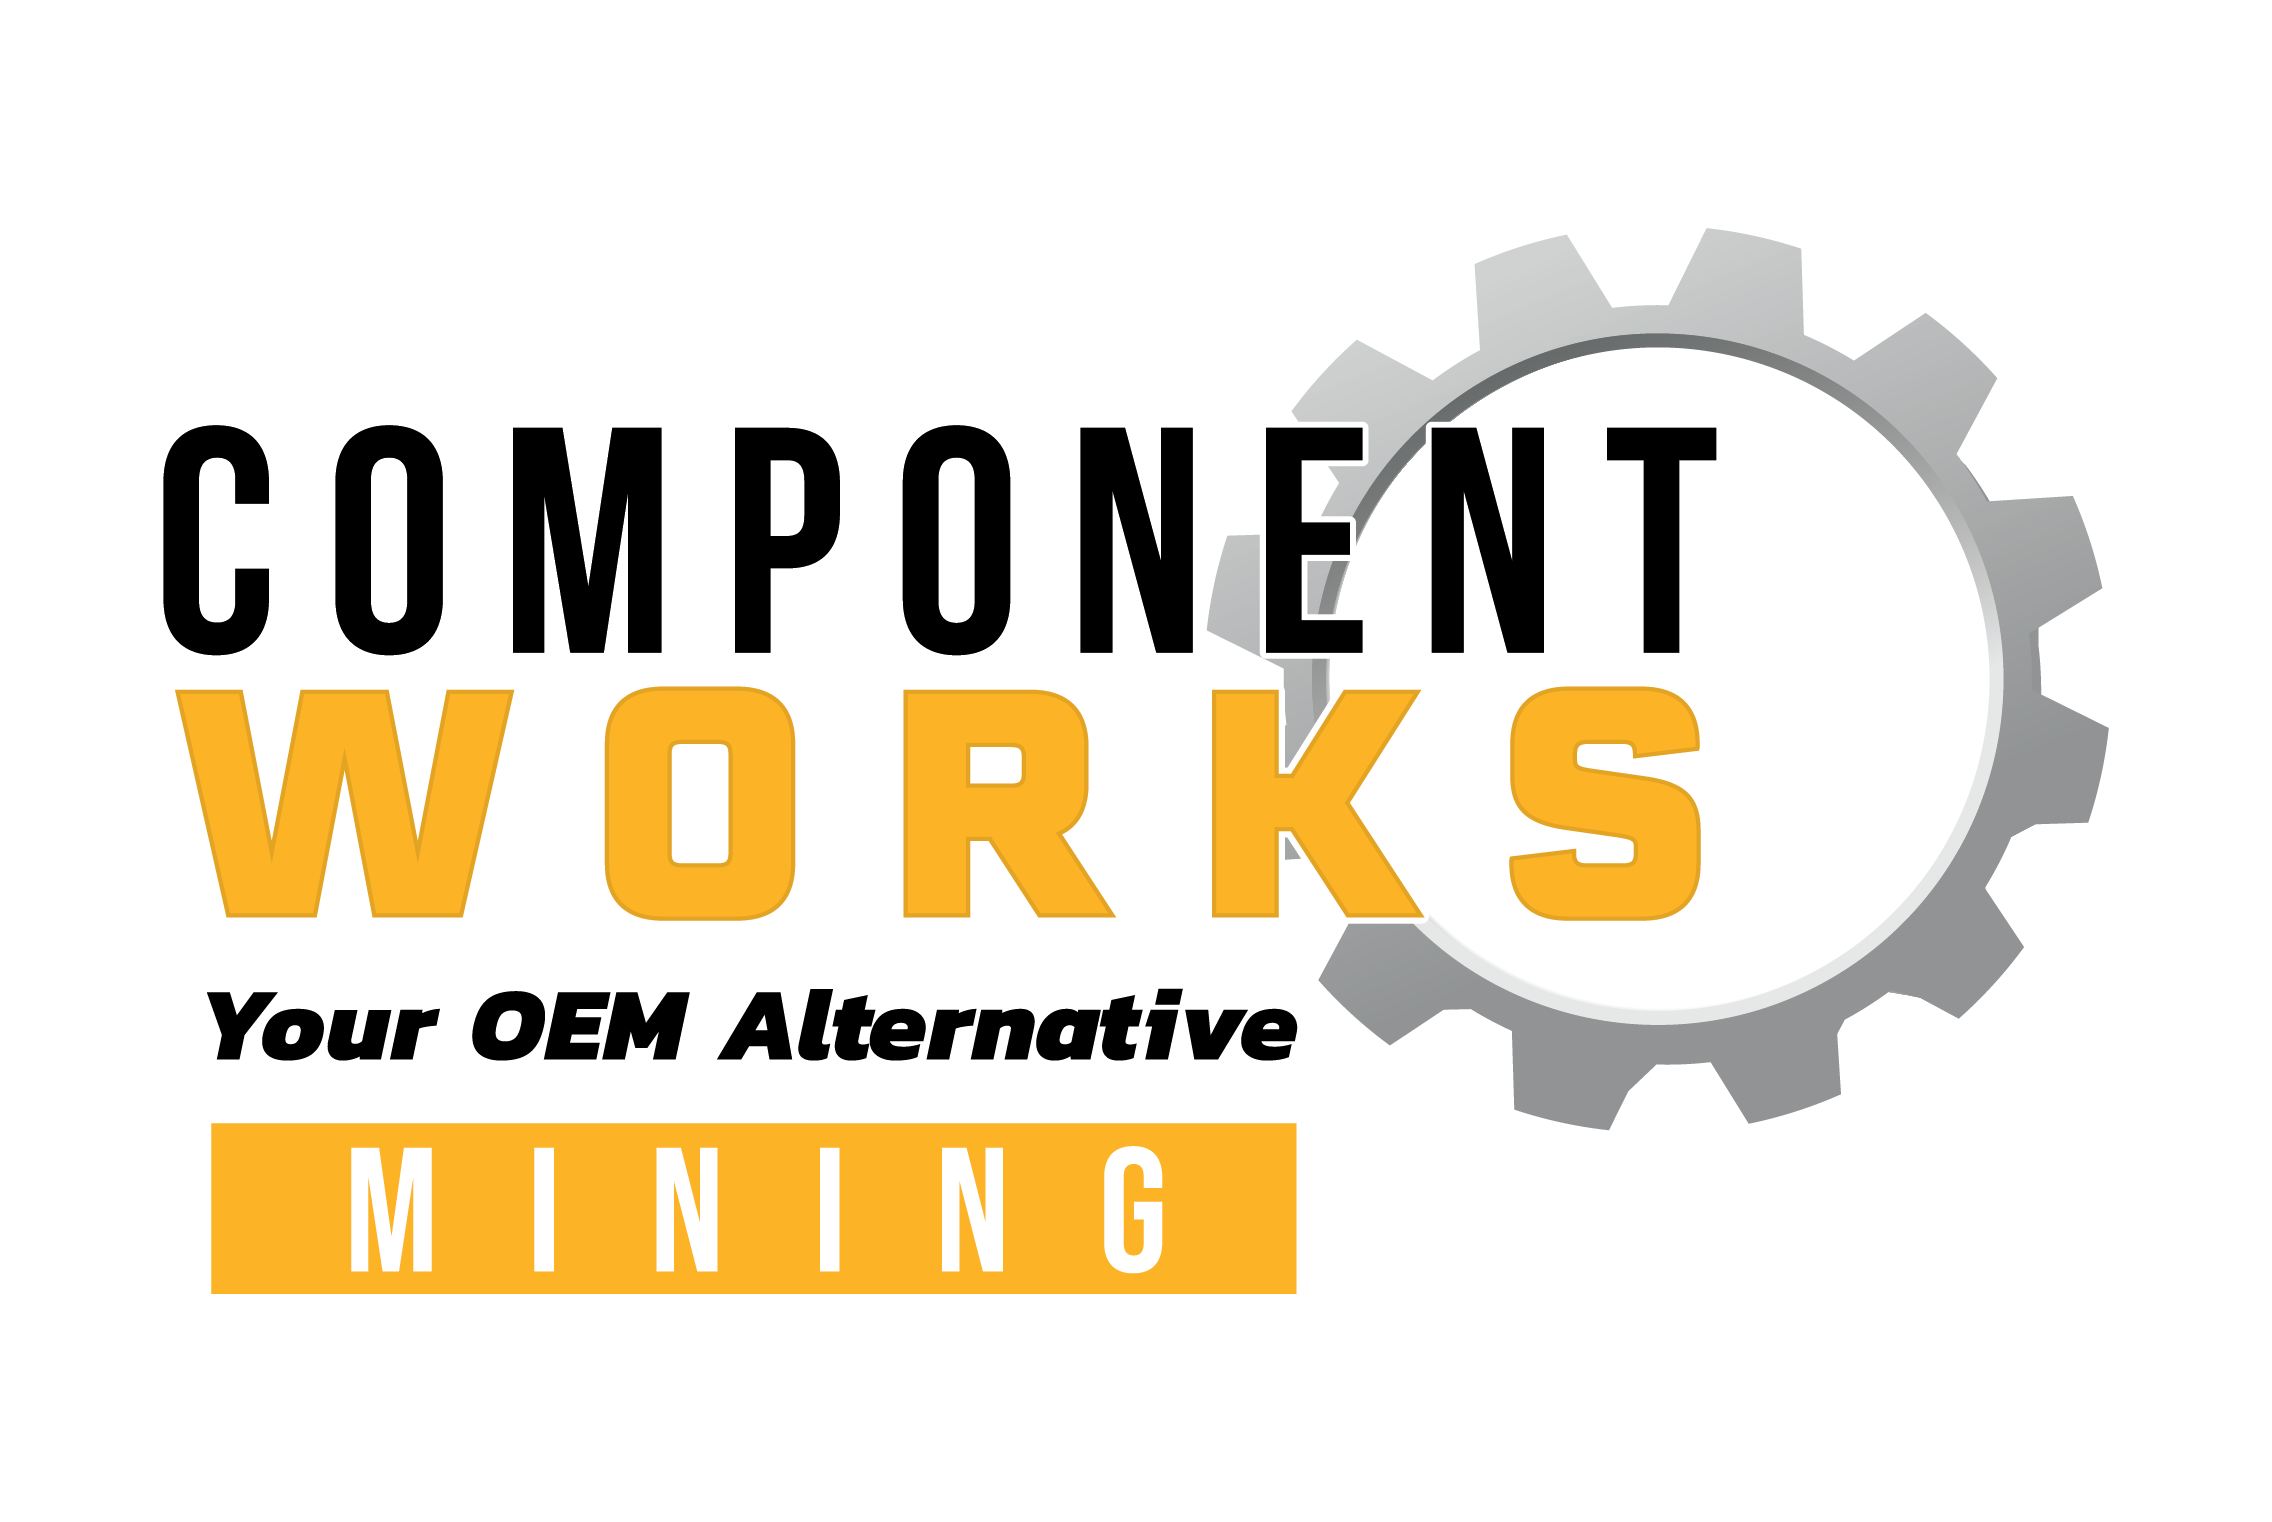 Mining CW LOGOS Outlines 01